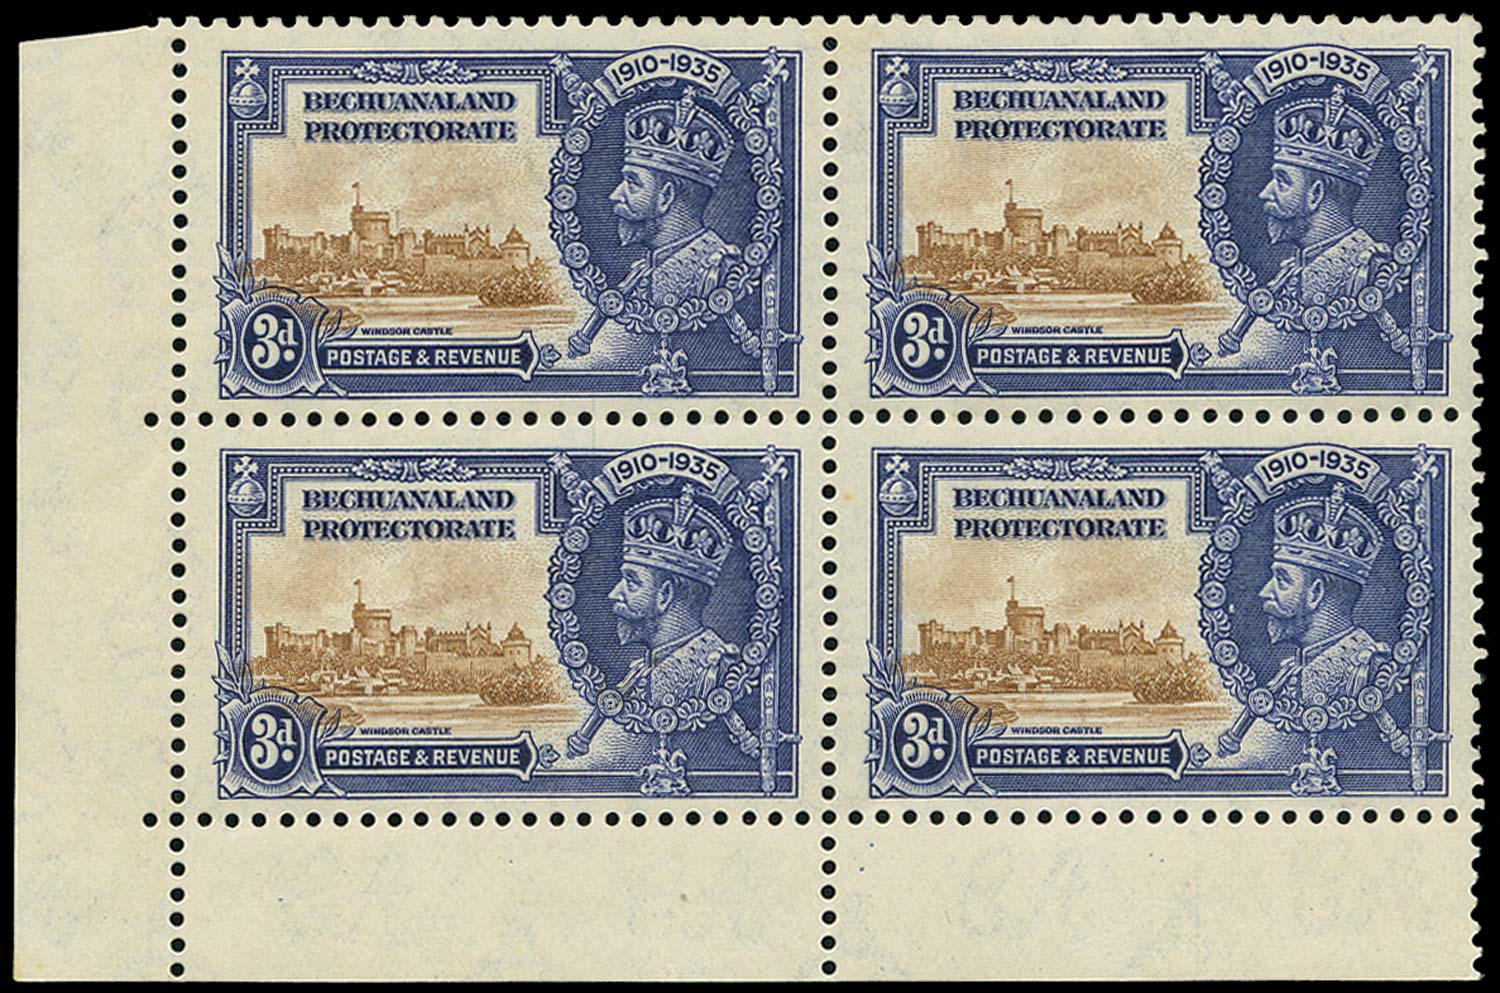 BECHUANALAND 1935  SG113/a Mint Silver Jubilee 3d with Extra Flagstaff